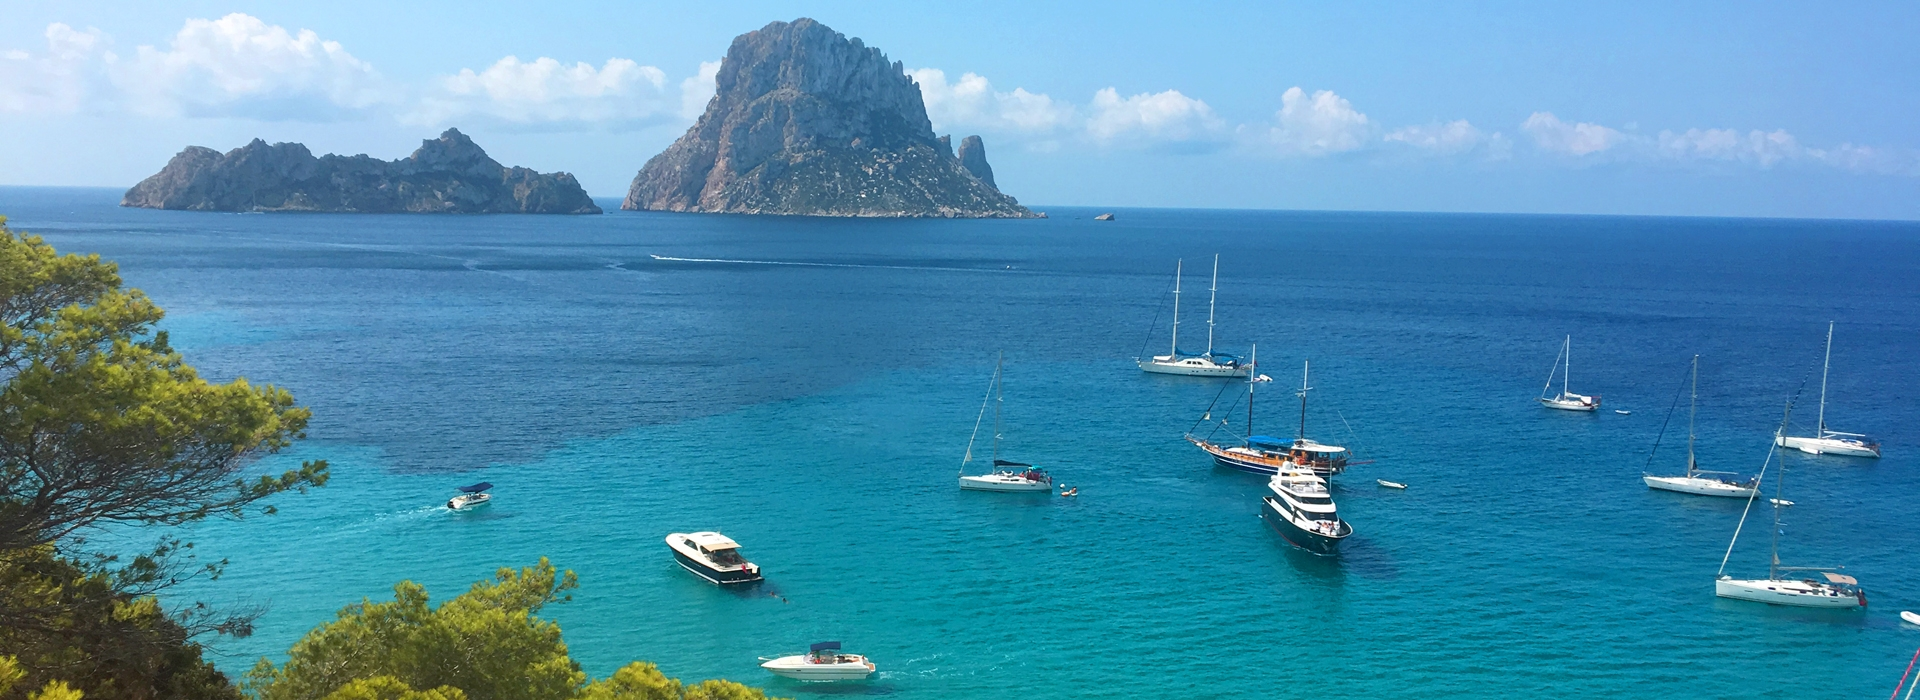 Travel to Ibiza in 2019